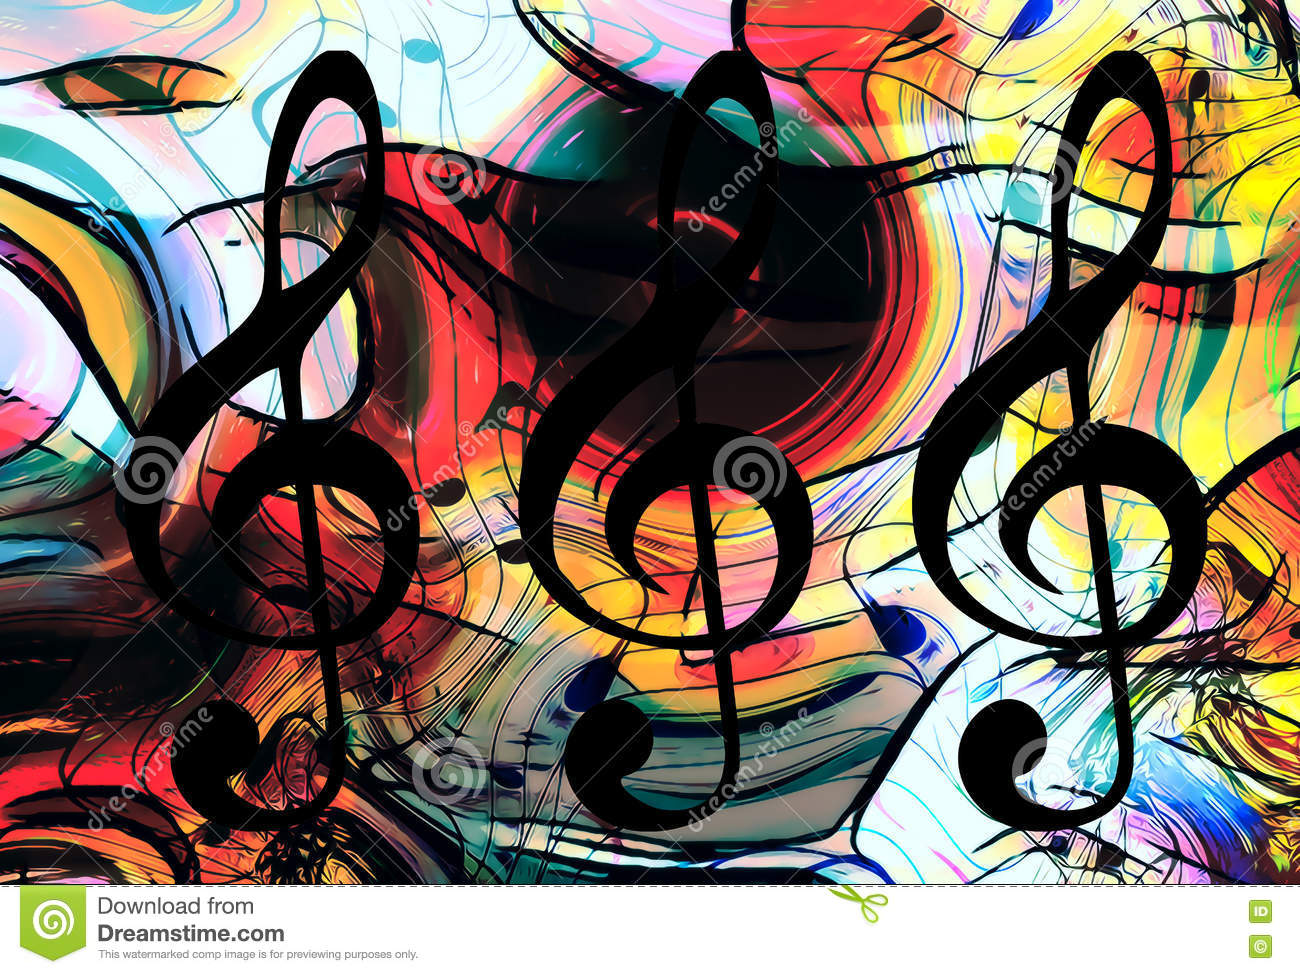 Abstract Music Notes Art: Abstract Set Of Music Clefs And Lines With Notes, Music